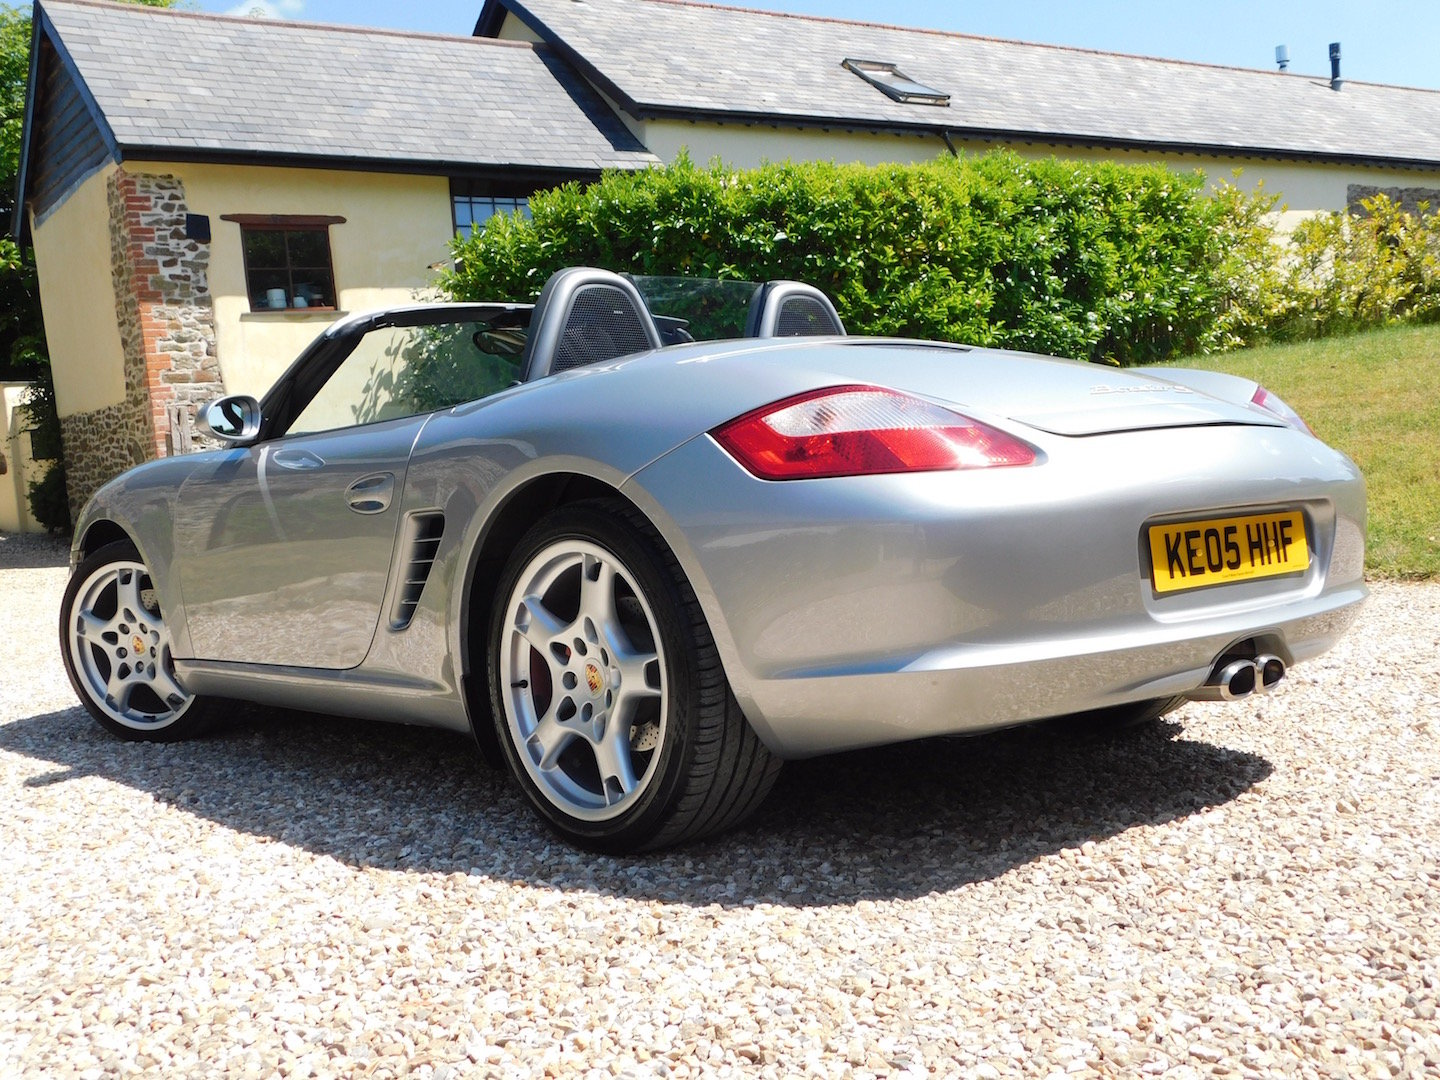 2005 Porsche 987 Boxster 3.2 S - superb order, FSH, high spec For Sale (picture 3 of 6)